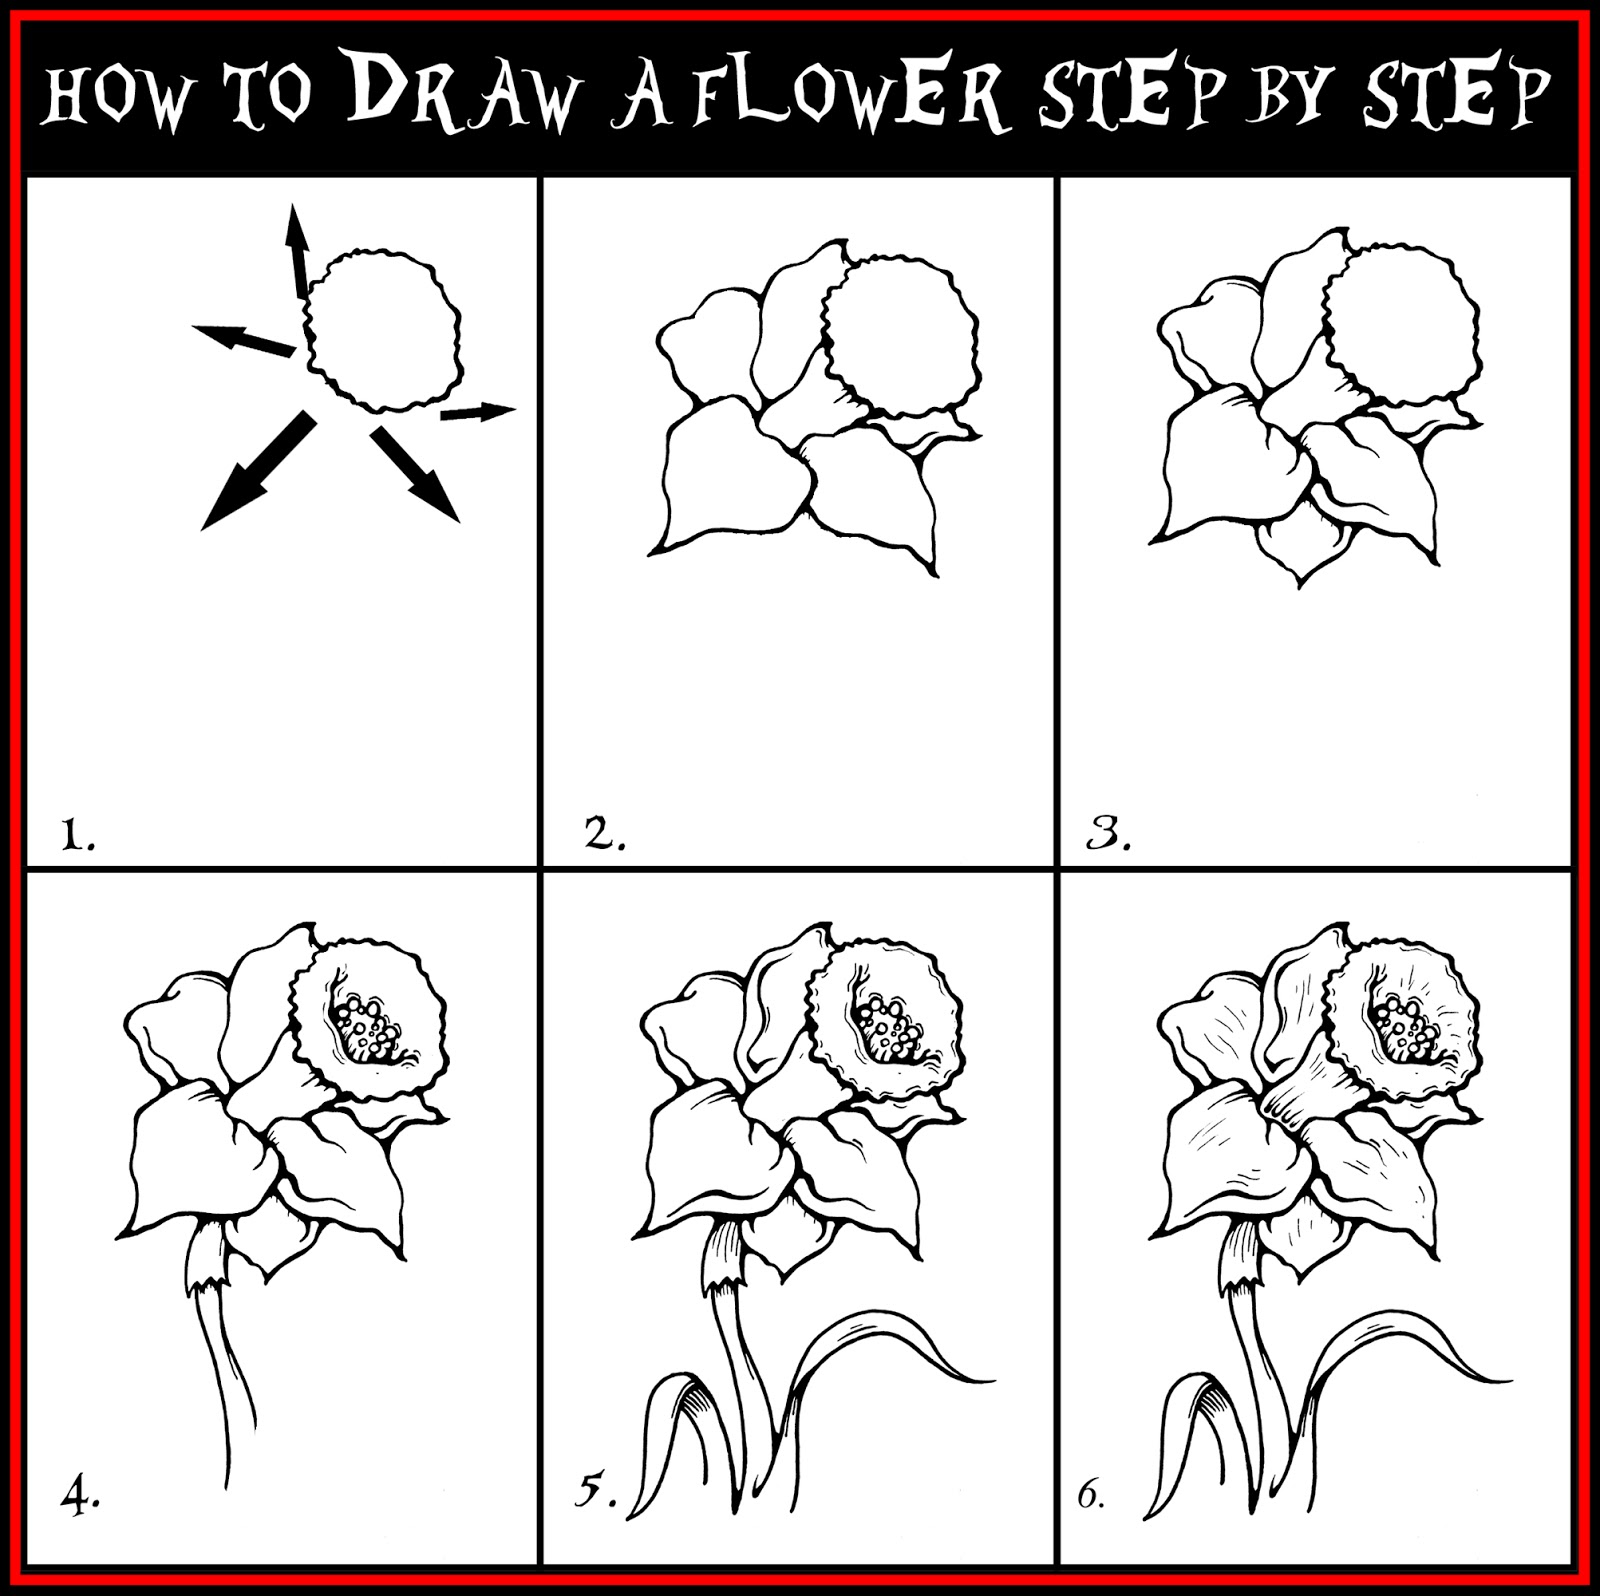 how to draw a flower step by step drawing guide daryl hobson artwork